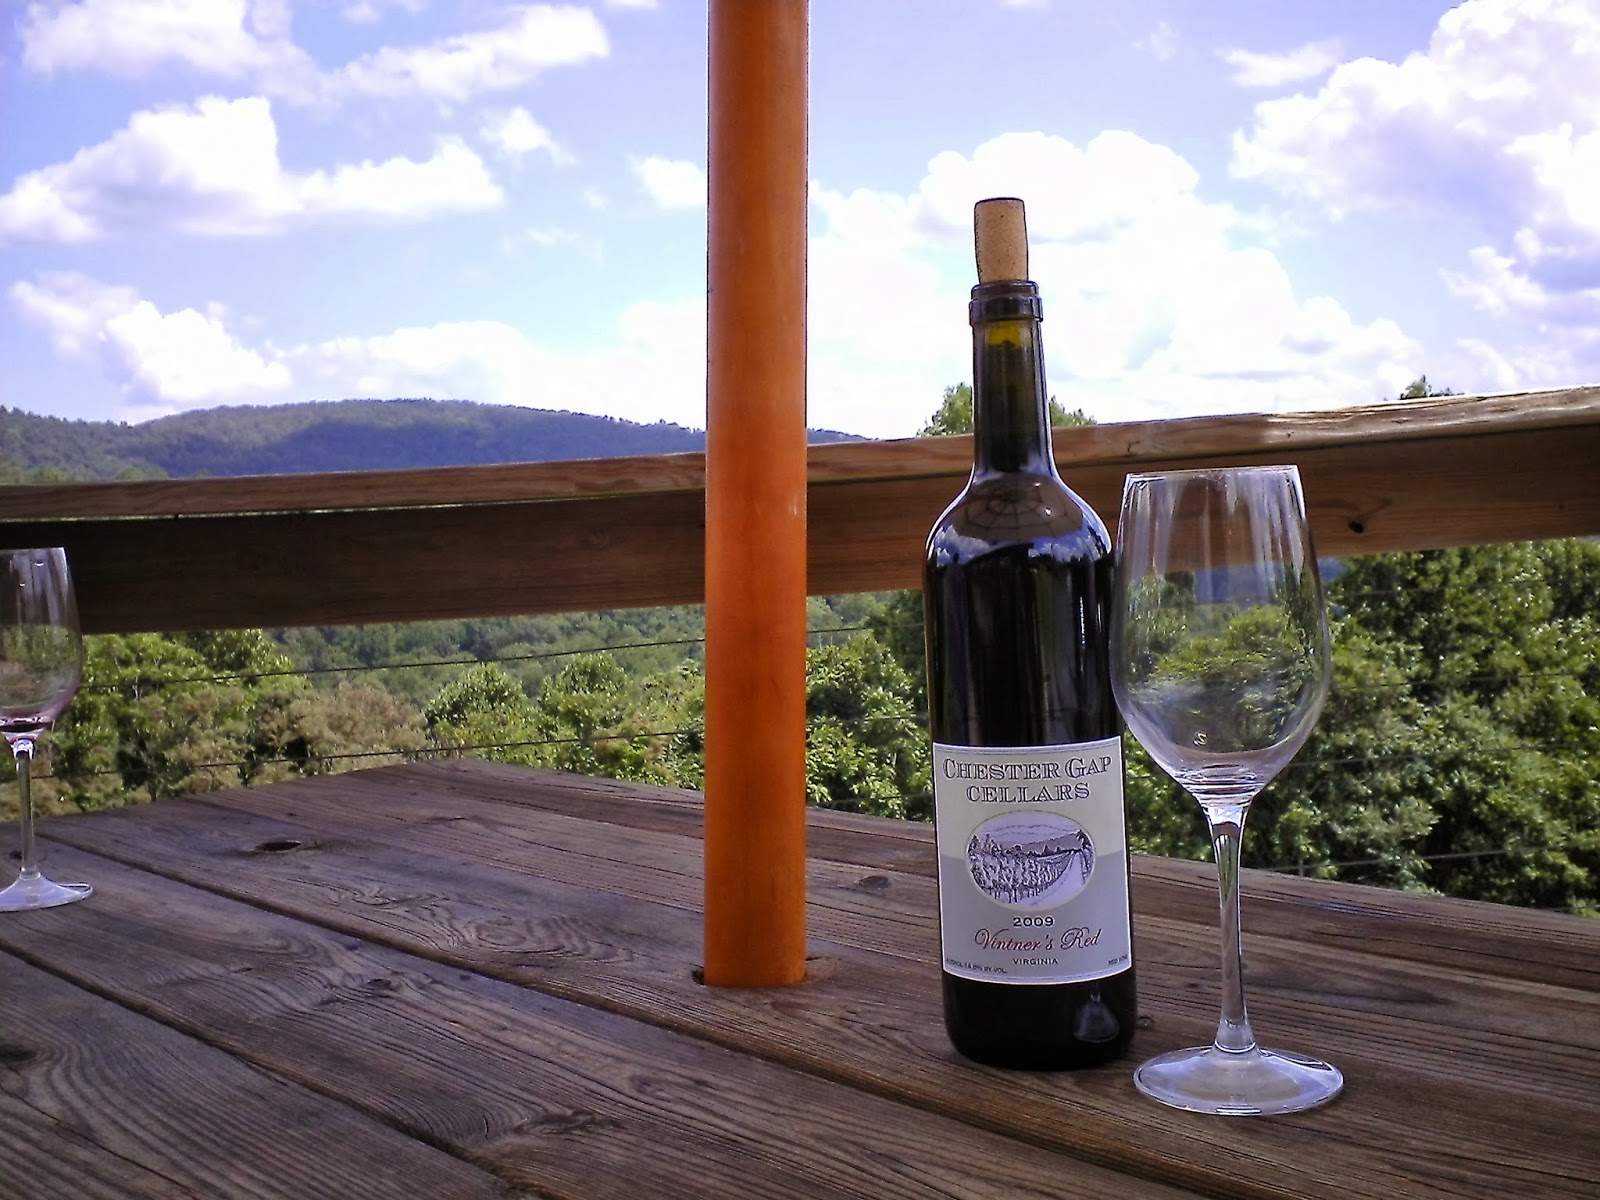 As the case with wineries in the valleys many other locations in Virginia offer fantastic views from the mountains and hilltops. Other favorites are listed ... & VIRGINIA WINE NOTEBOOK: Three Great Views: Looking Down